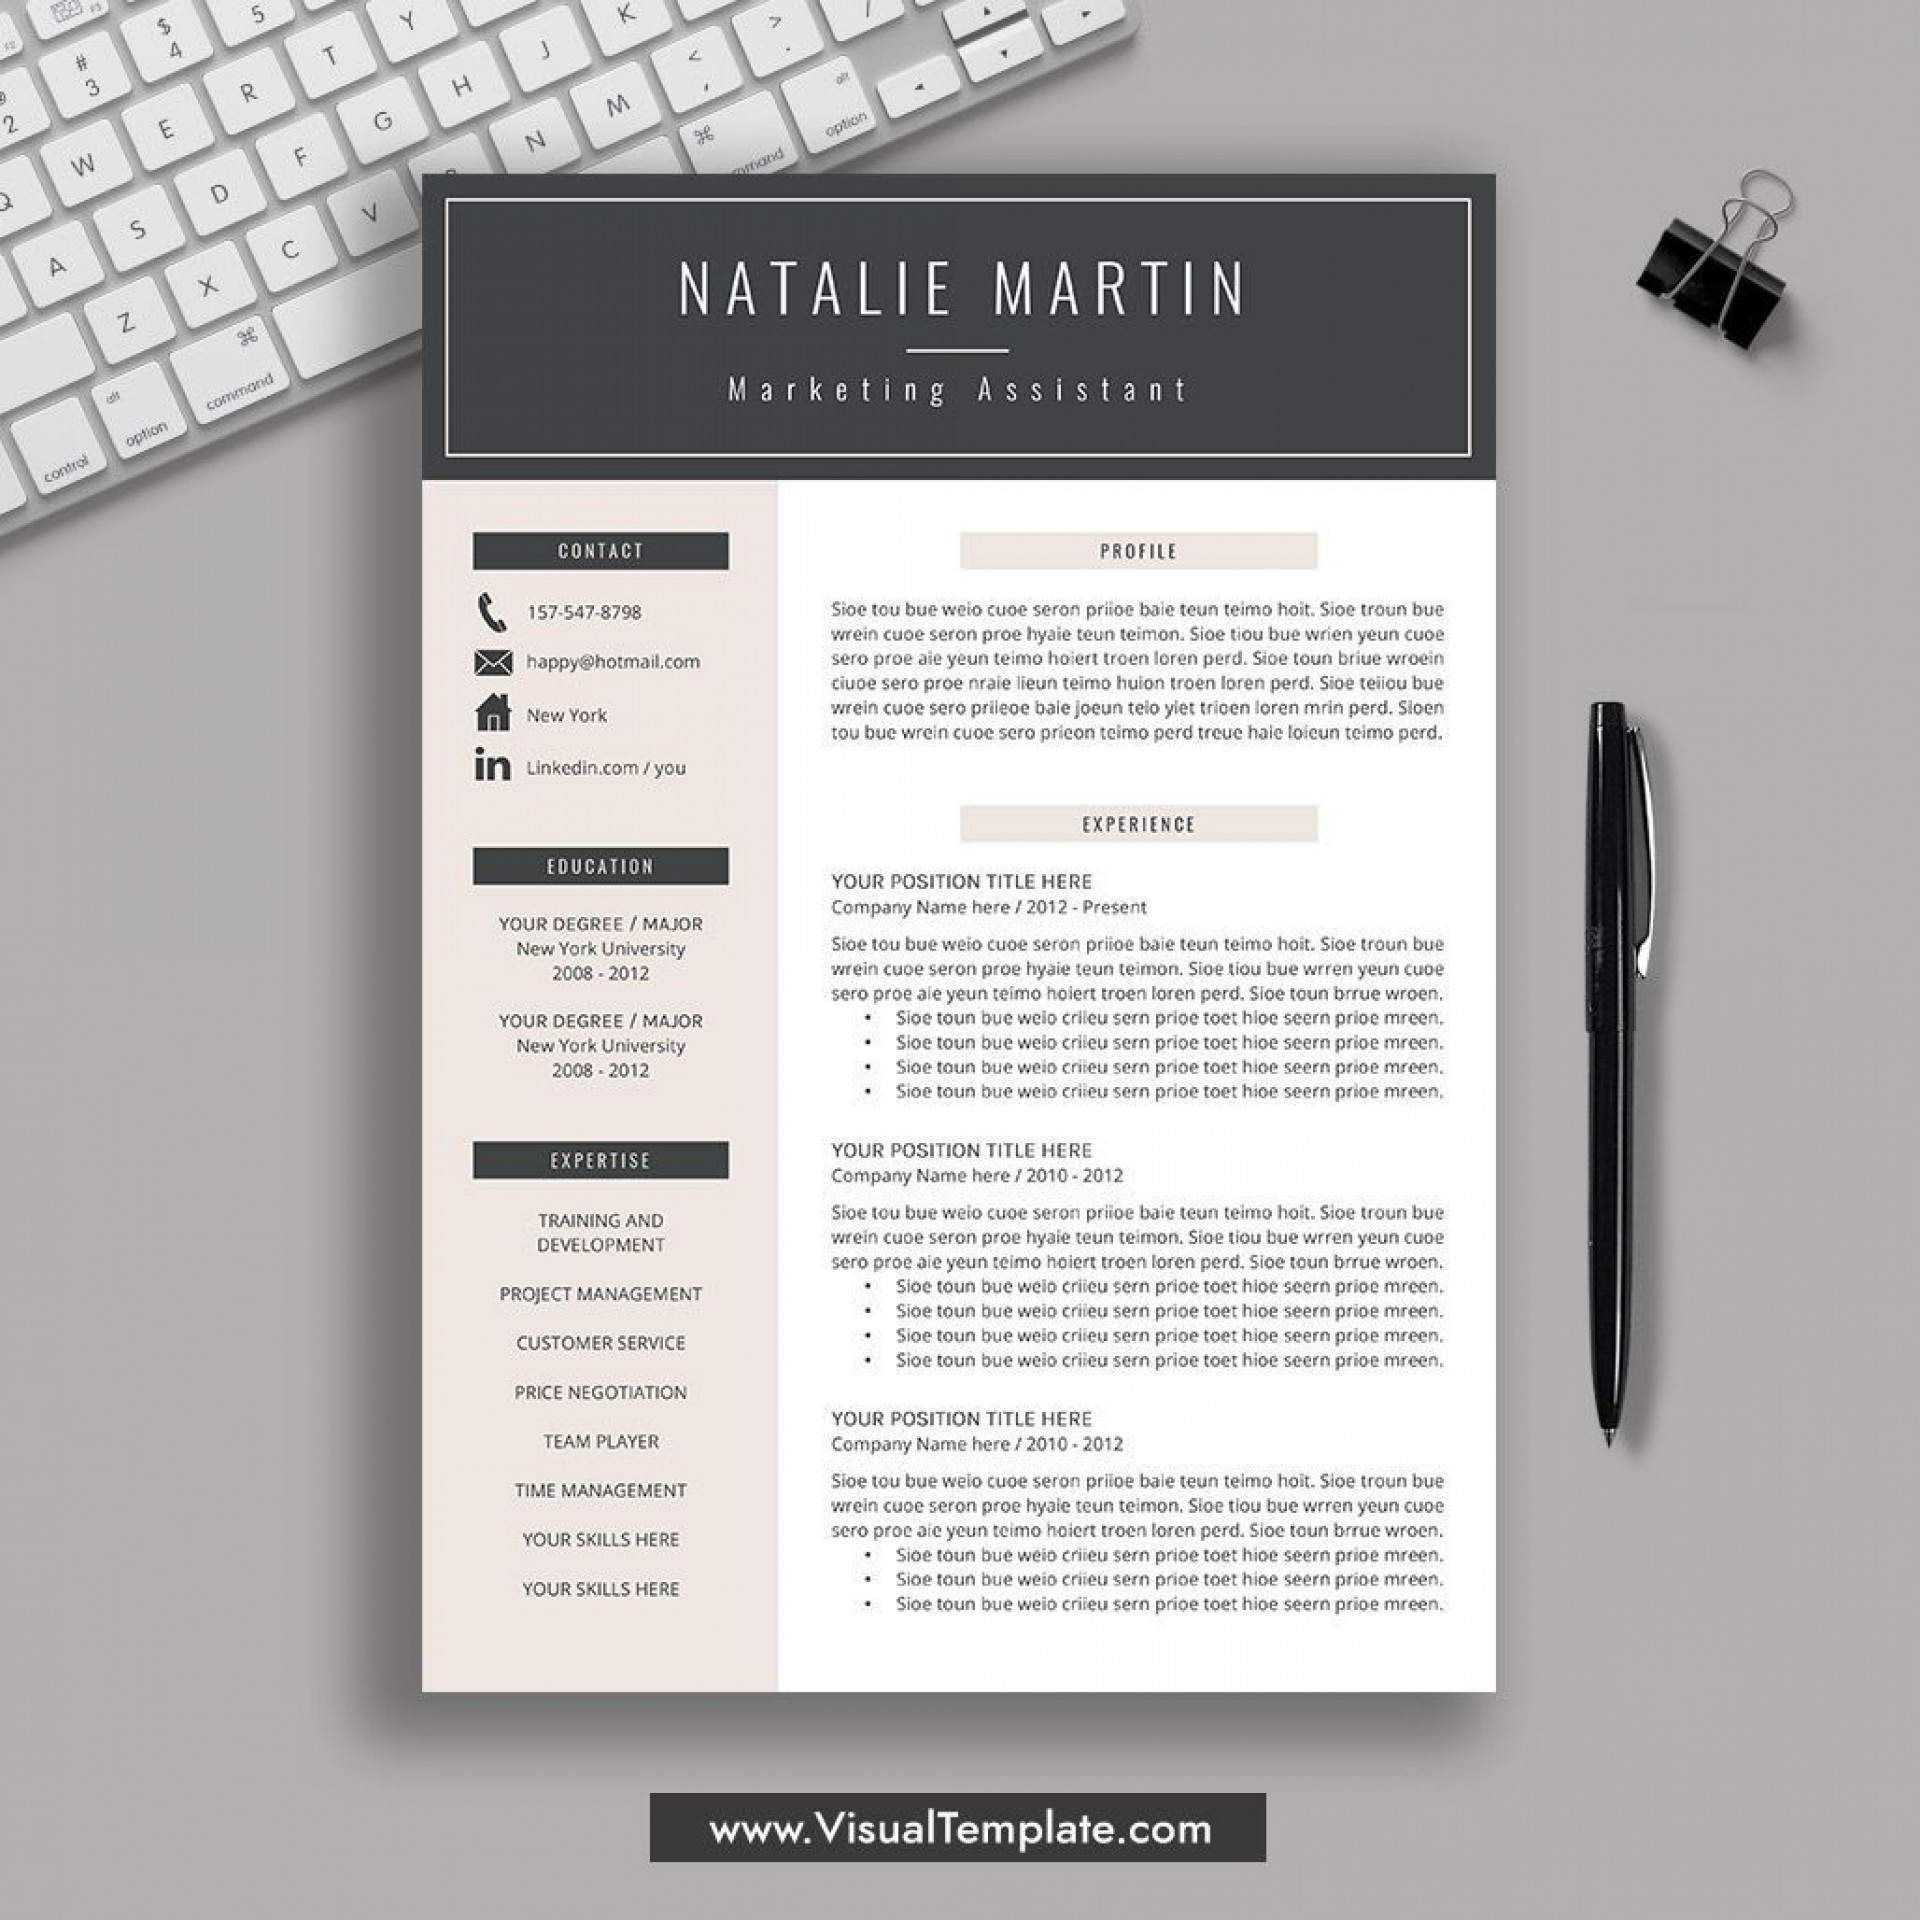 001 Striking Resume Template M Word 2019 Picture  Microsoft Free1920